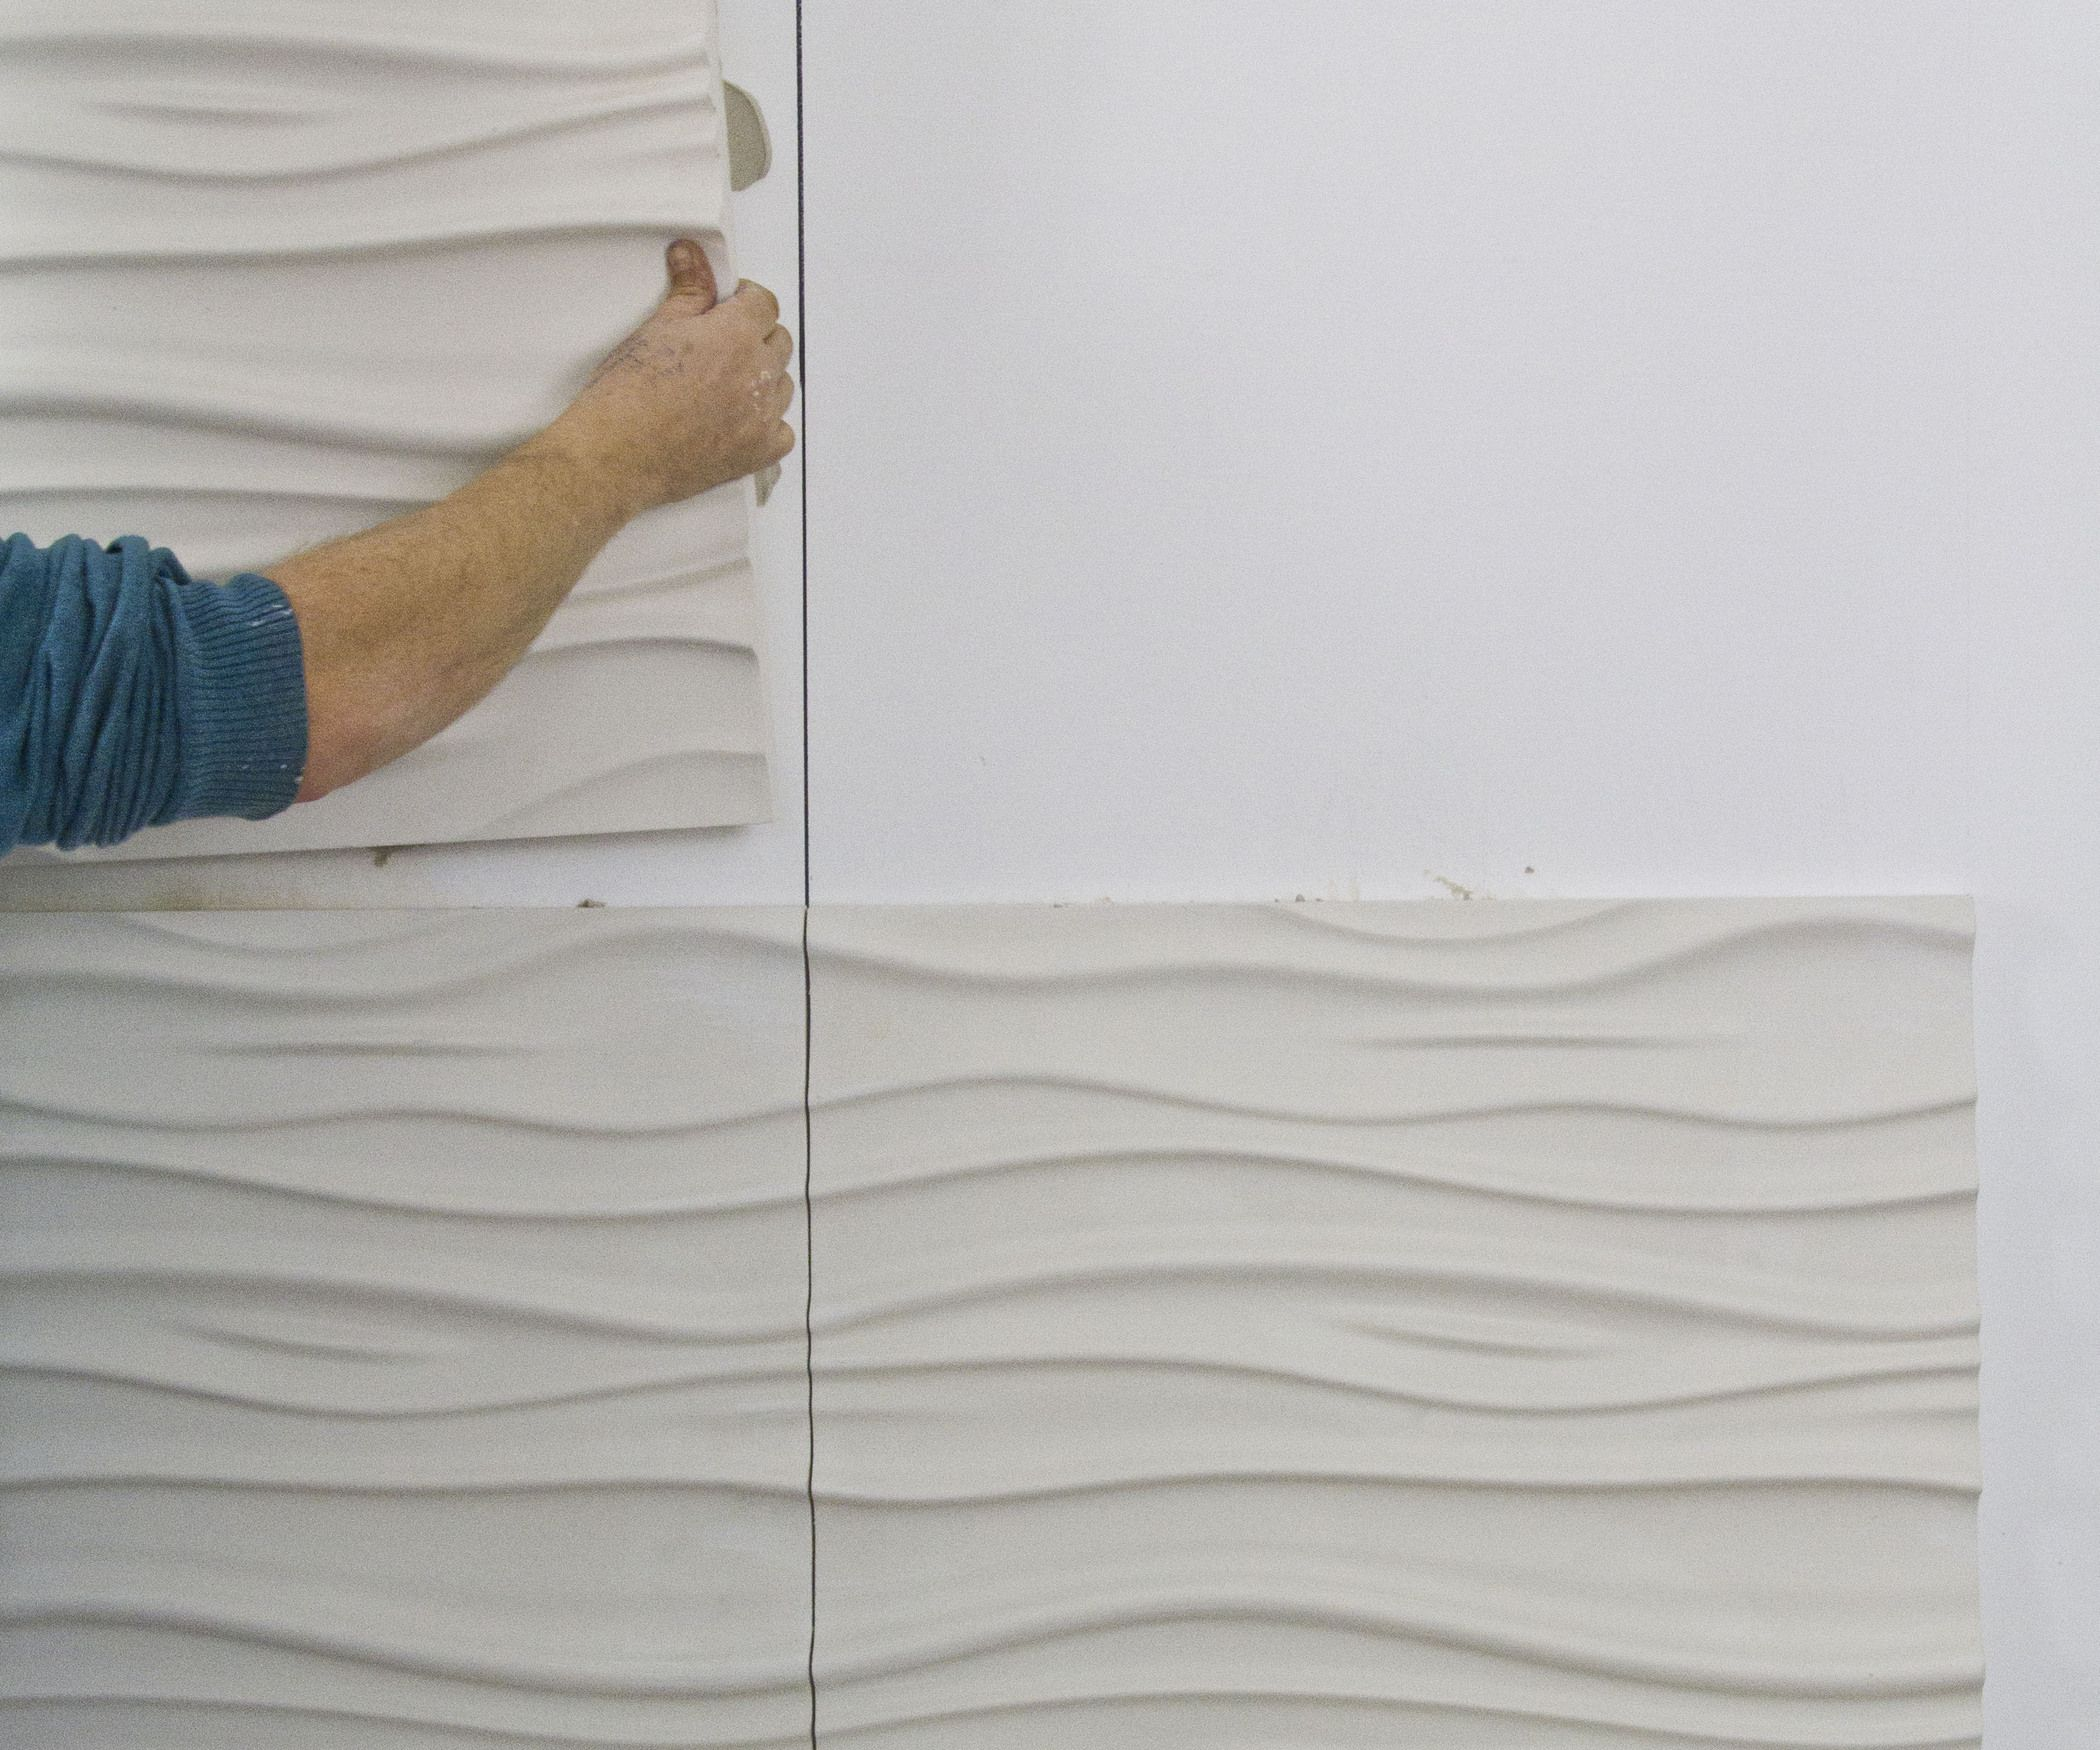 How To Install 3d Textured Wall Panels Textured Wall Panels 3d Textured Wall Panels 3d Wall Panels